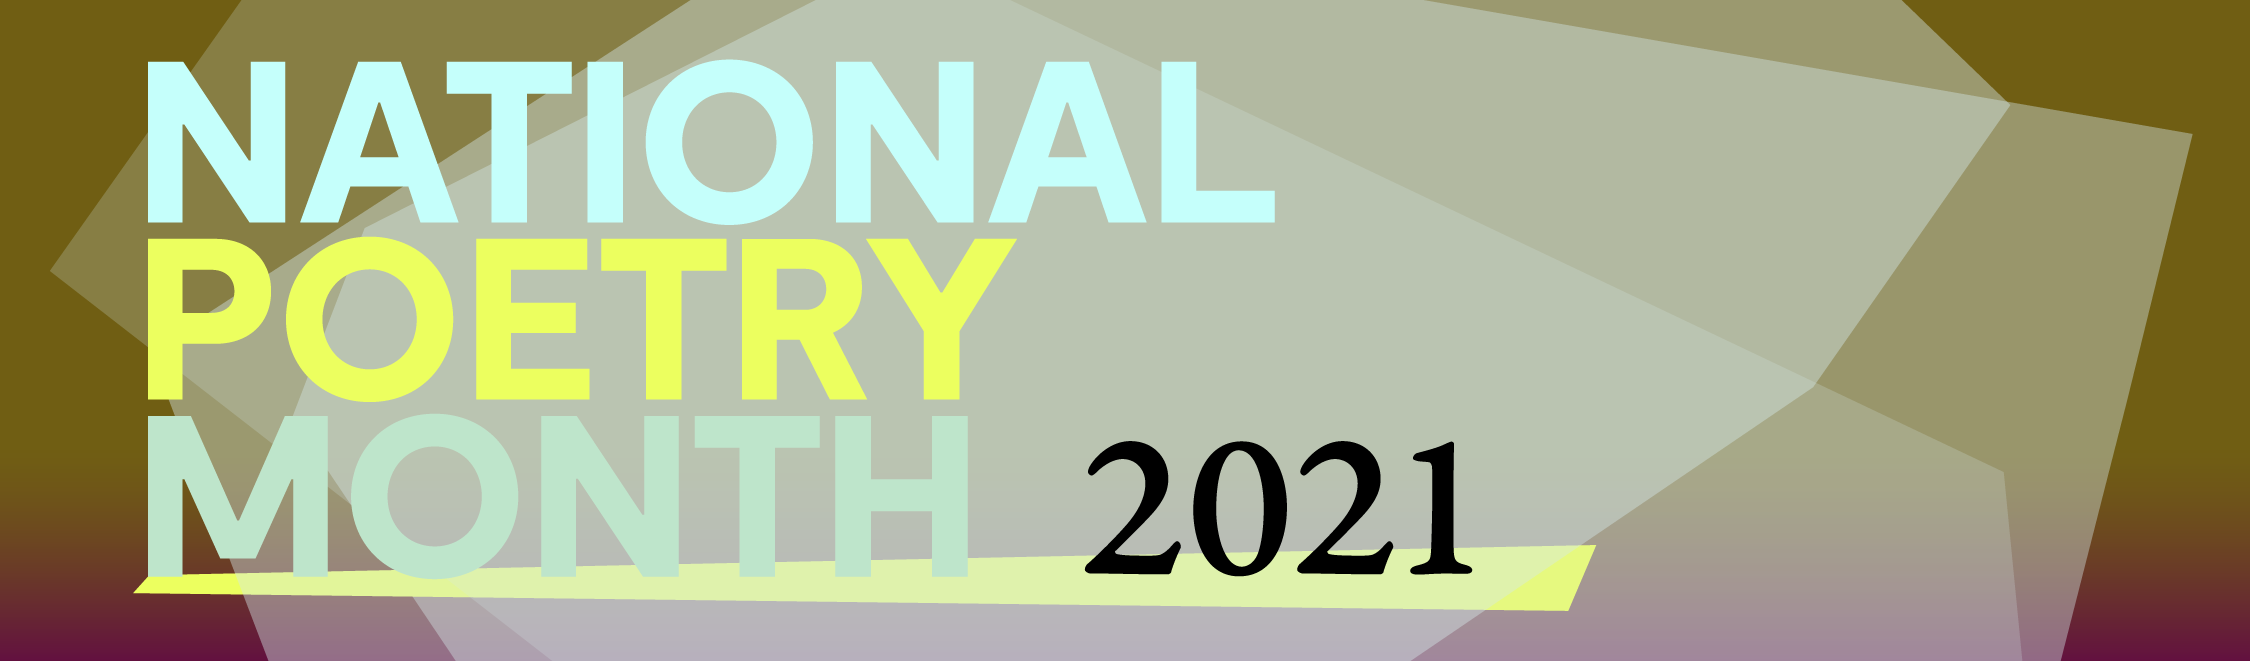 National-Poetry-Month-2021-banner_web-03